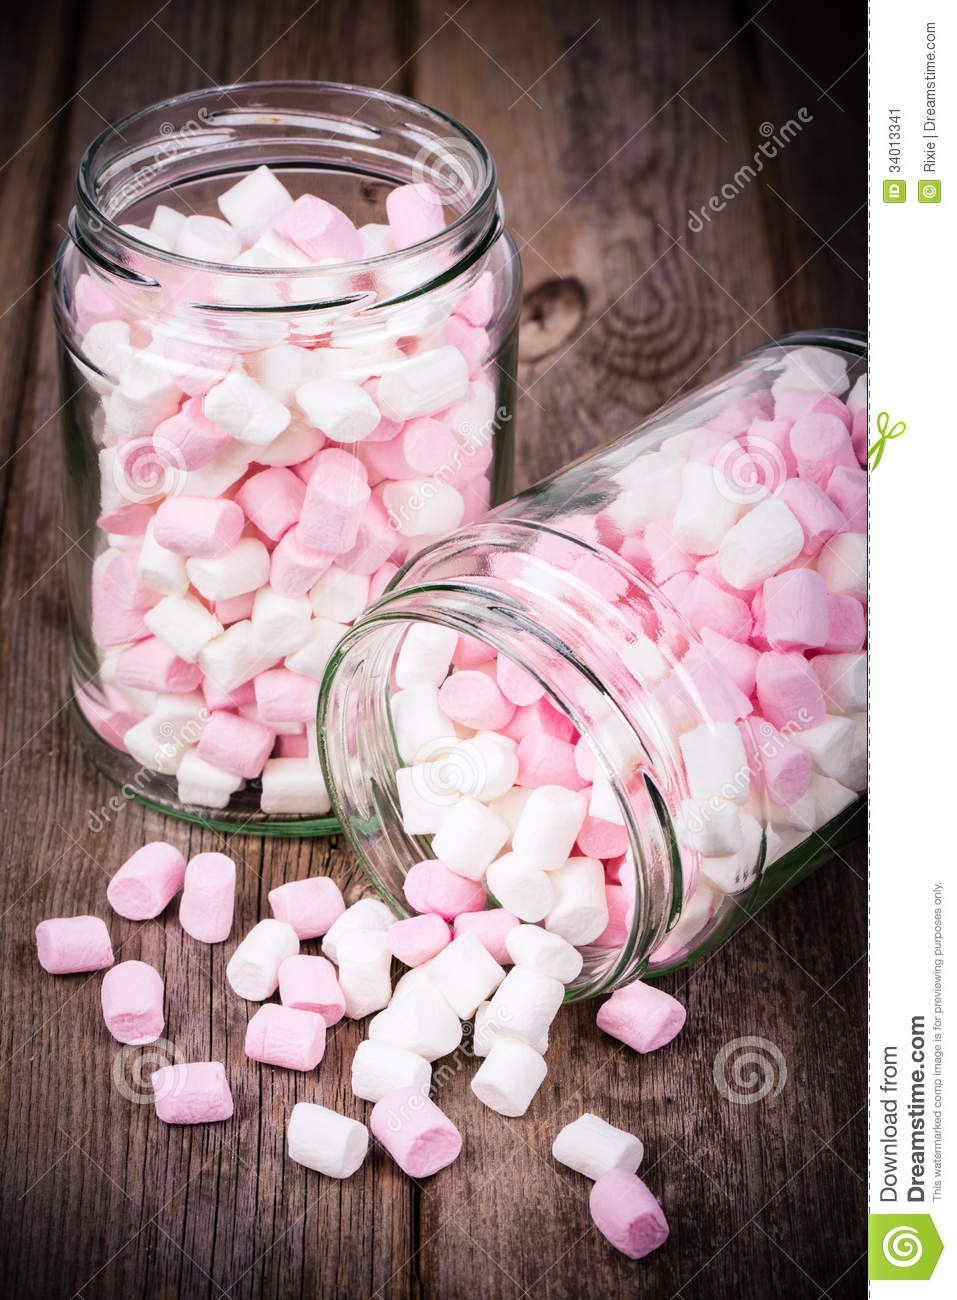 Marshmallows In A Jar Stock Image  Image 34013341